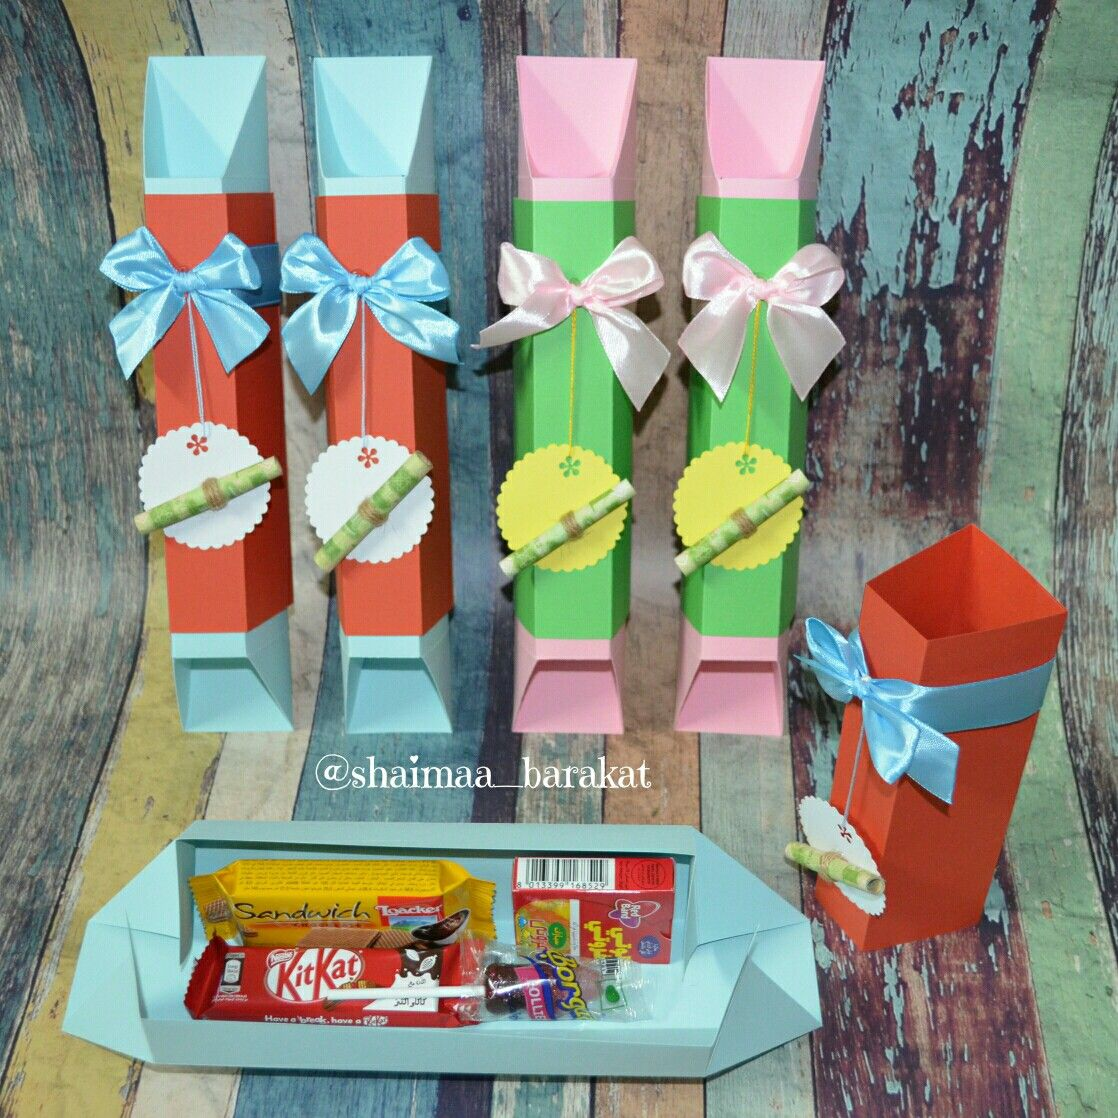 Pin By Shaimaa Barakat On Eid Eid Stickers Gifts Gift Wrapping